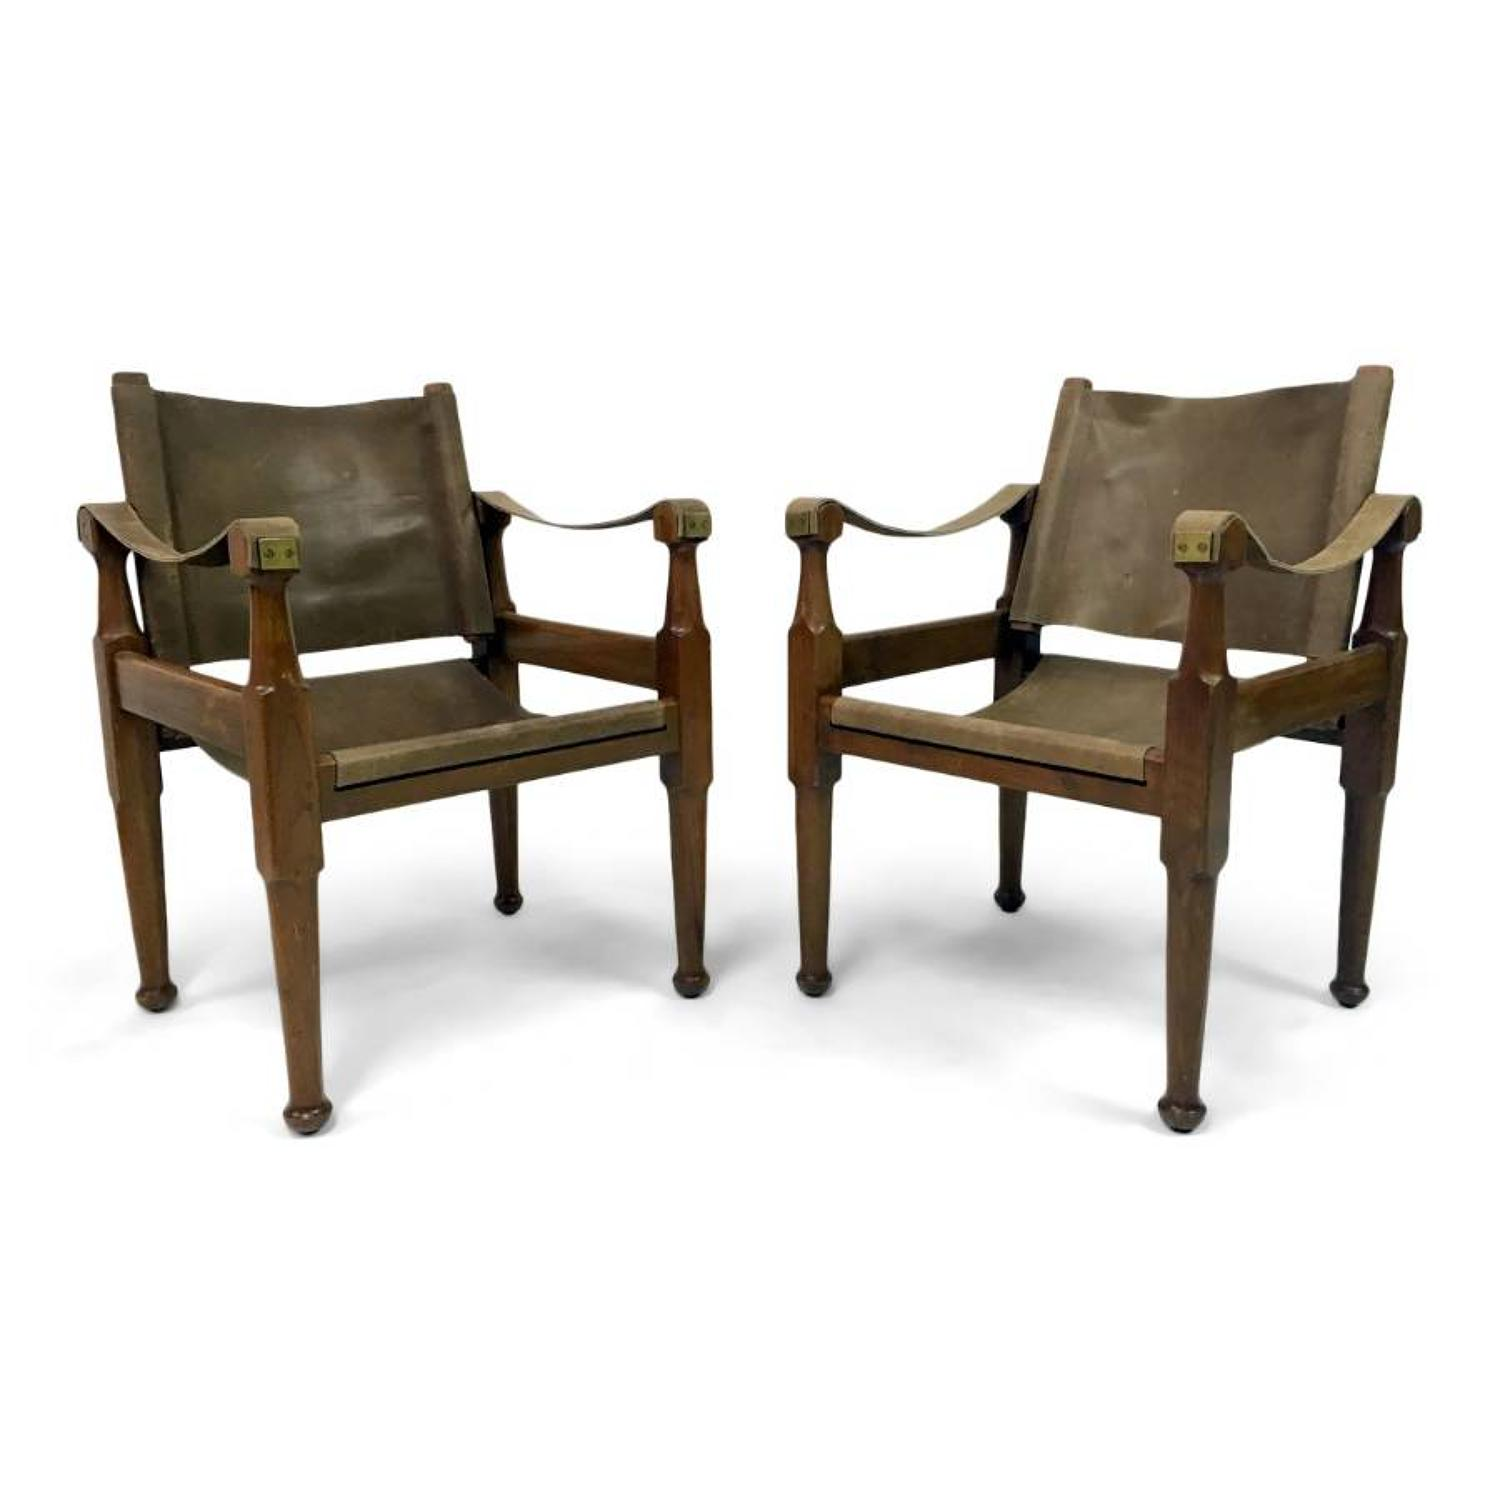 A pair of brown leather safari chairs